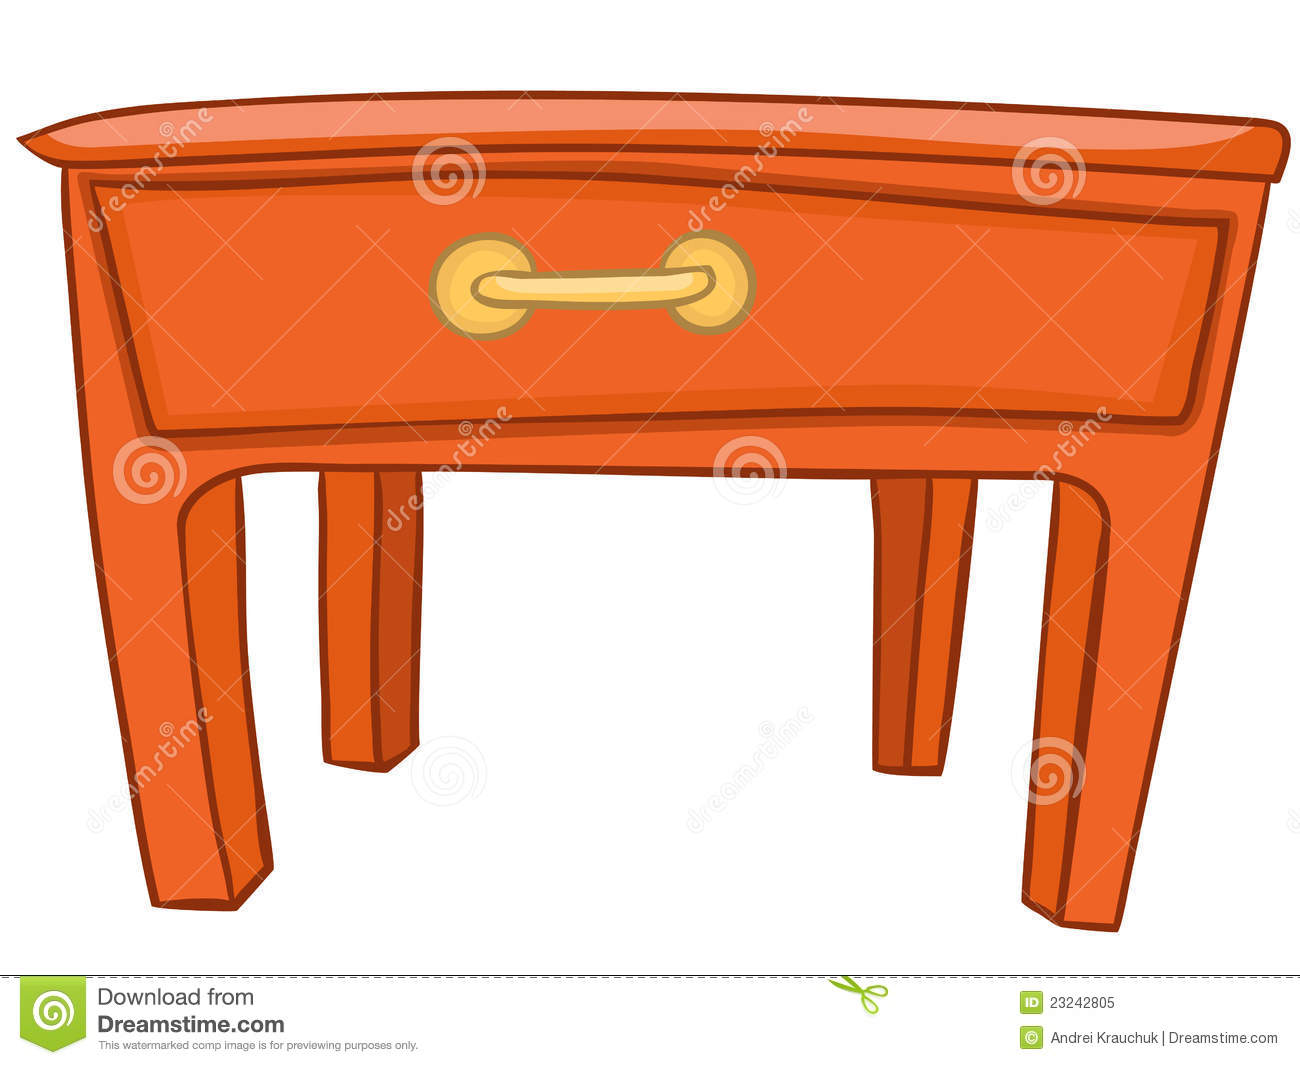 Cartoon kitchen table - Royalty Free Stock Image Kitchen Table Image20699846 Jpg 1300x1065 Cartoon Home Kitchen Furniture